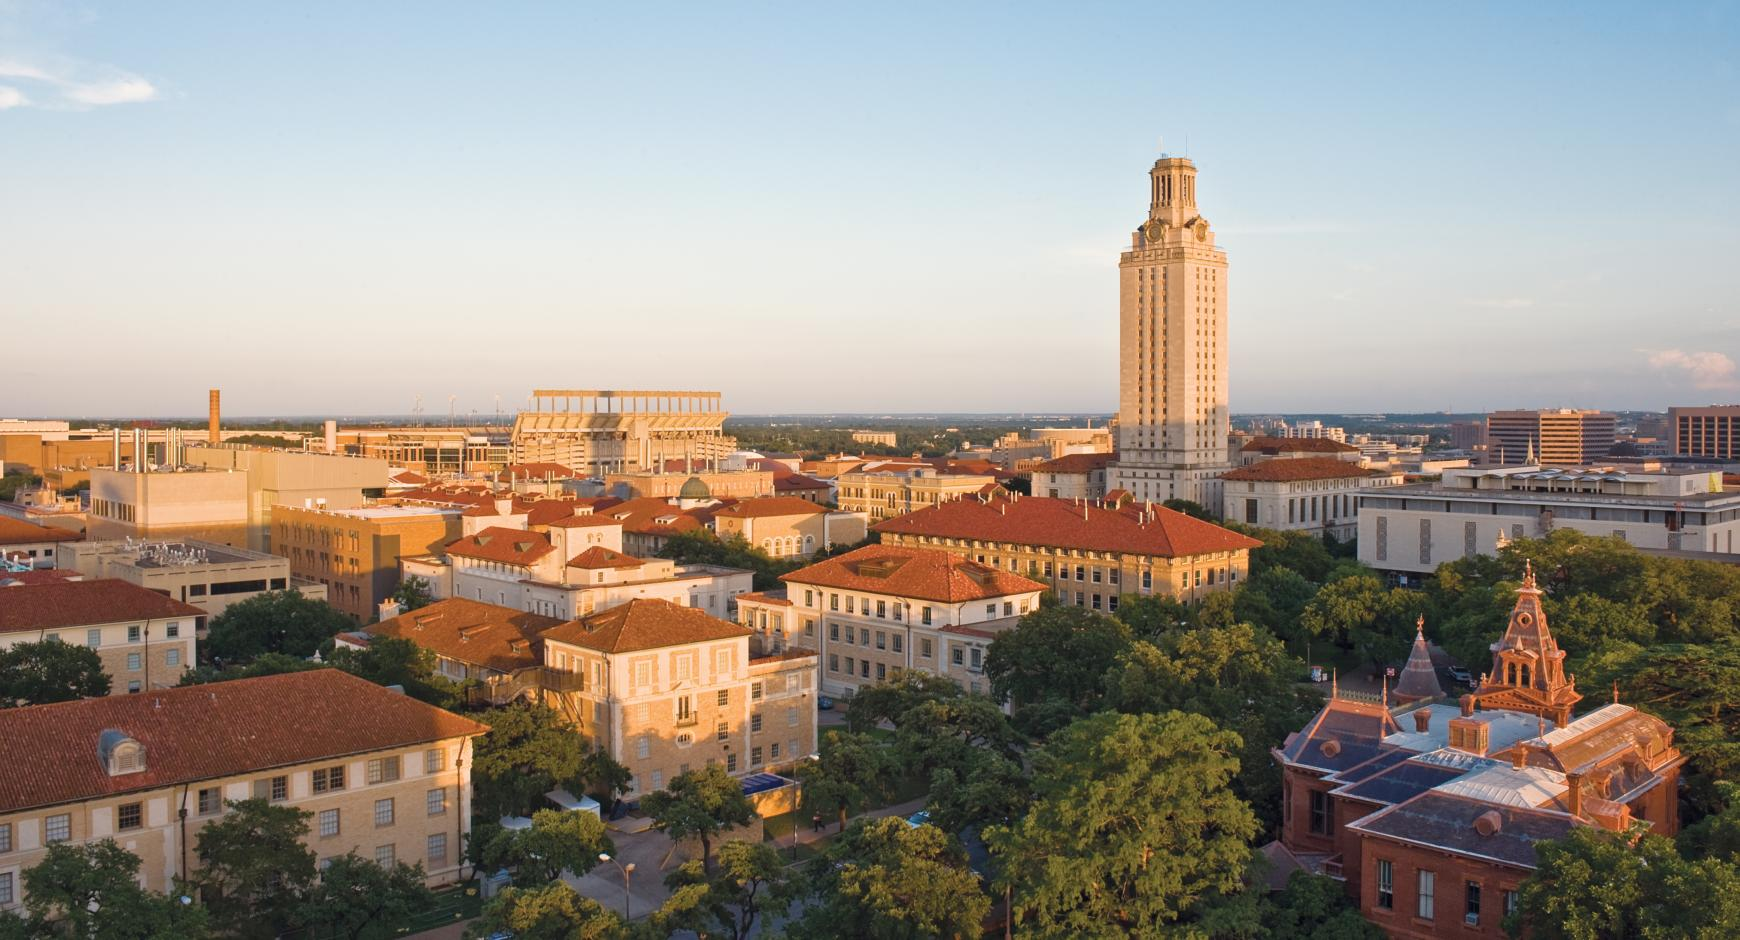 What are my chances of getting into Texas A&M and UT Austin?